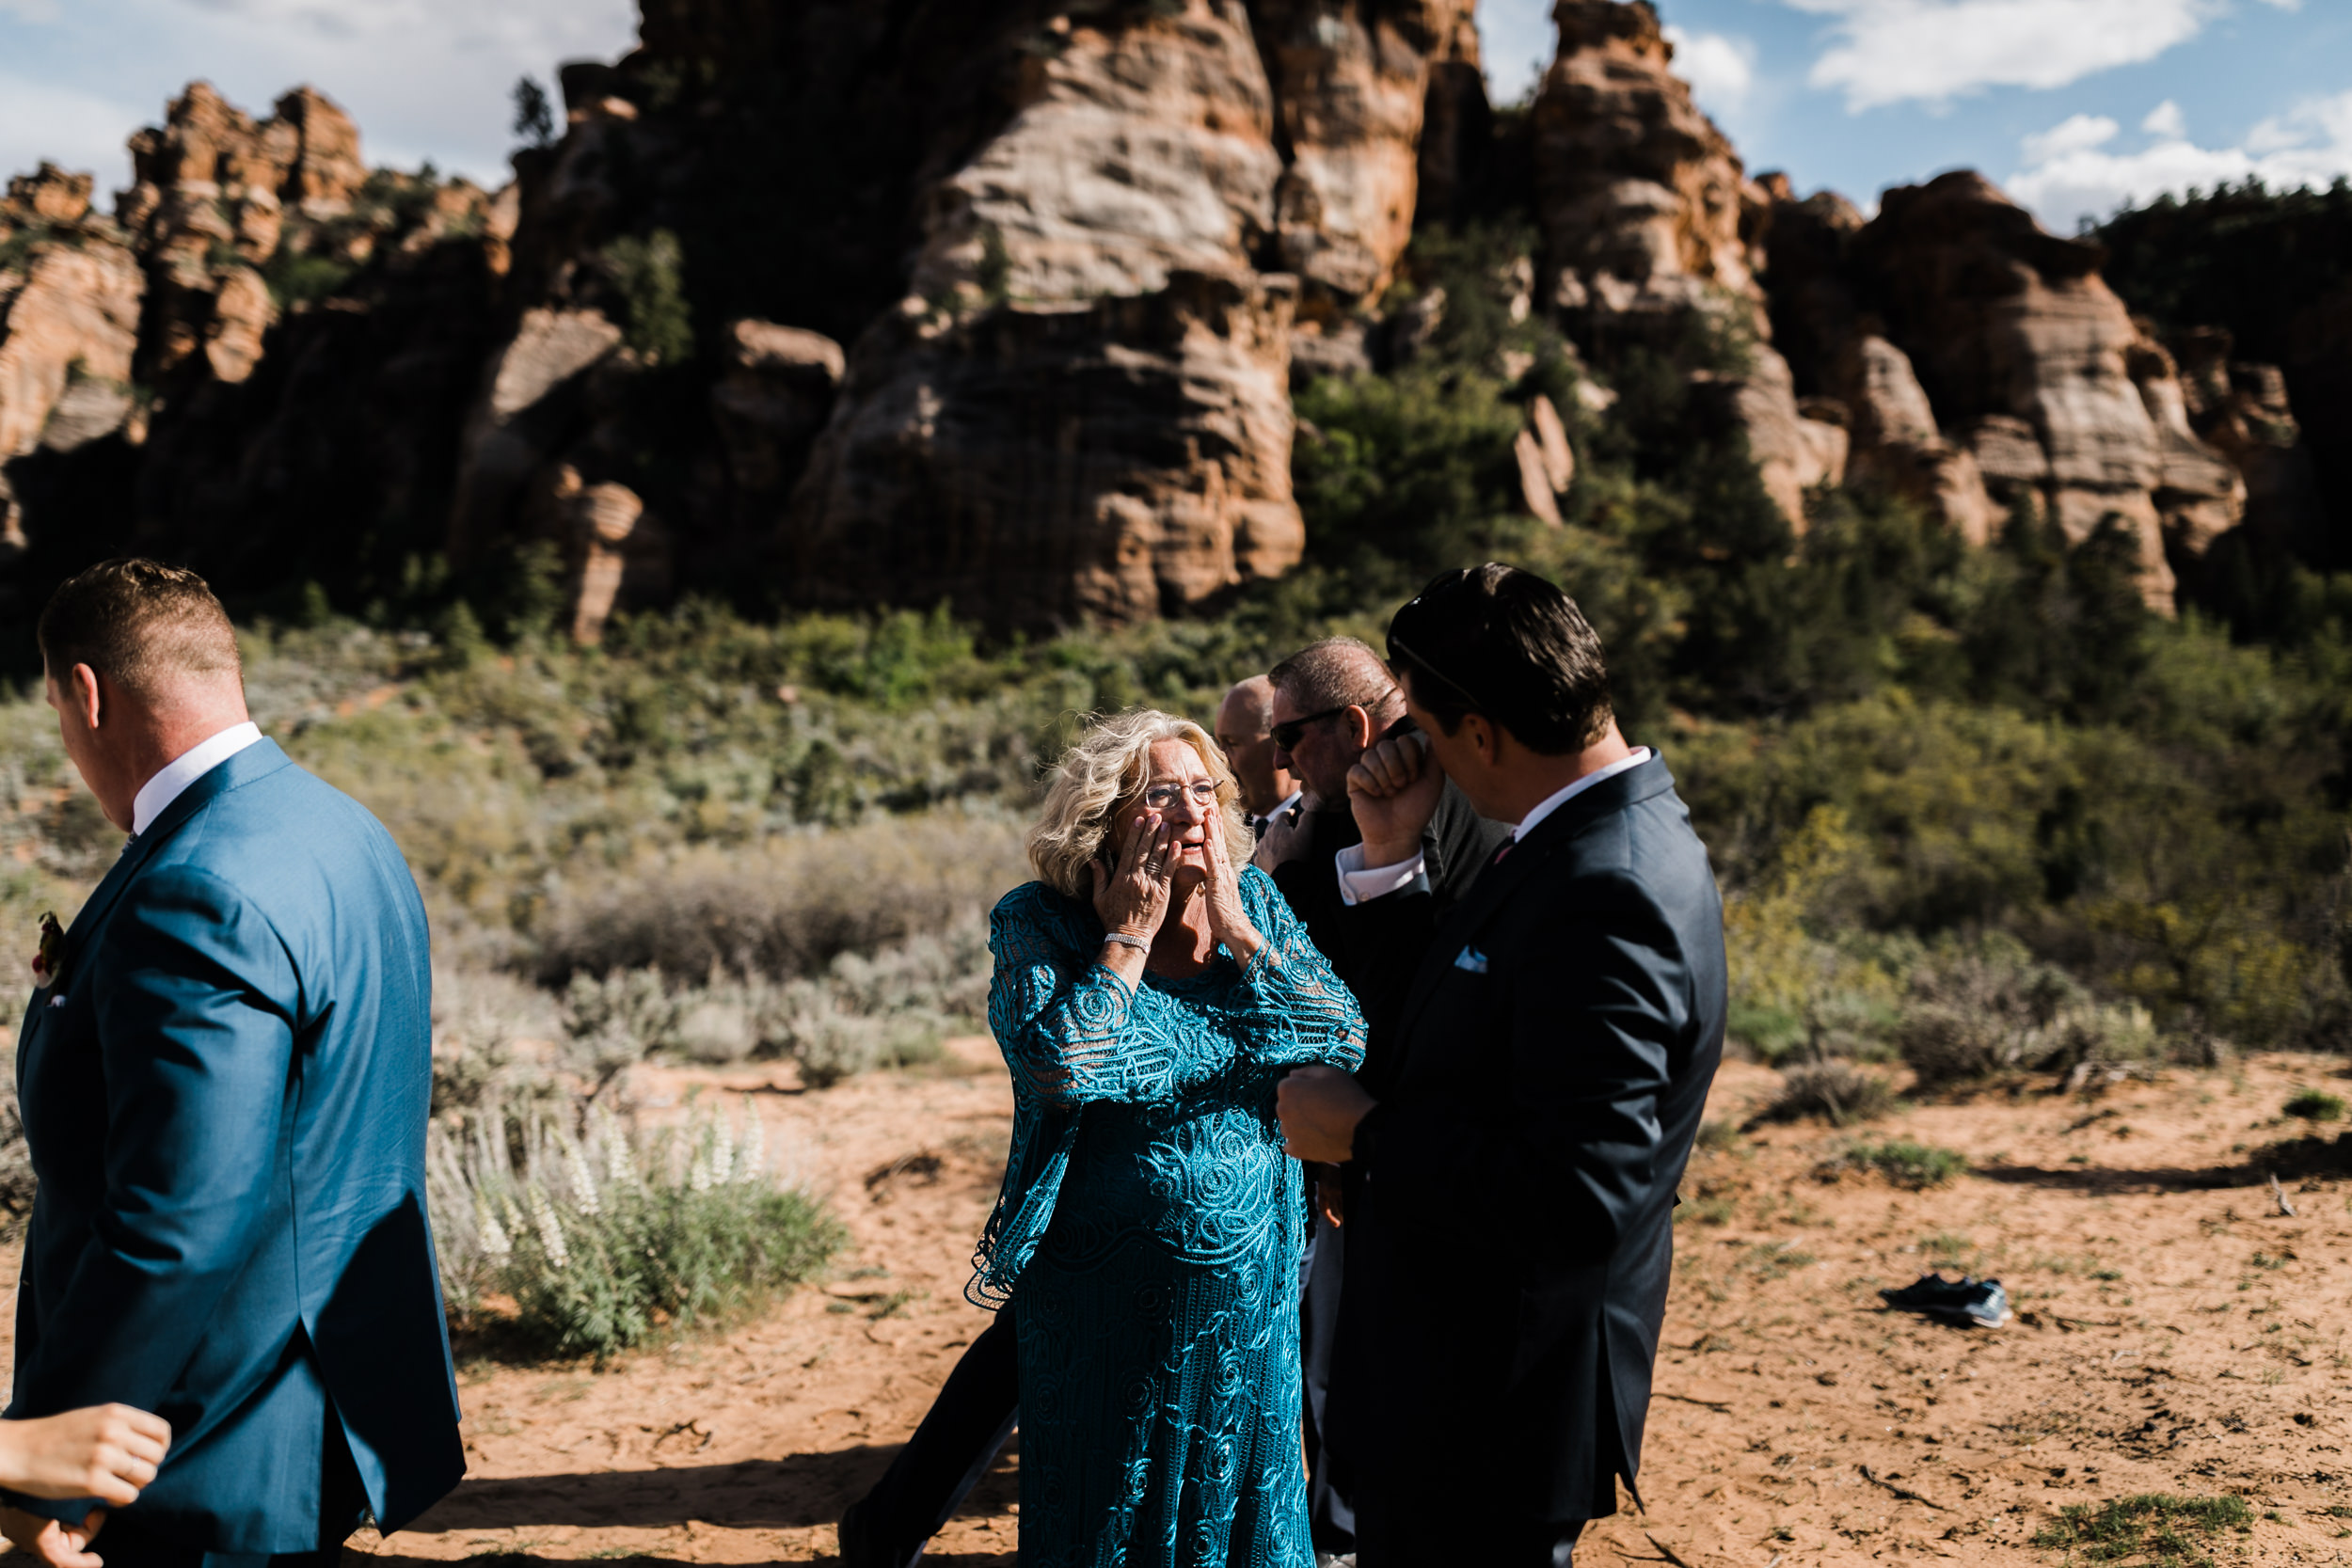 Zion national park elopement photographer | intimate wedding in the desert | small wedding ideas | the hearnes adventure photography